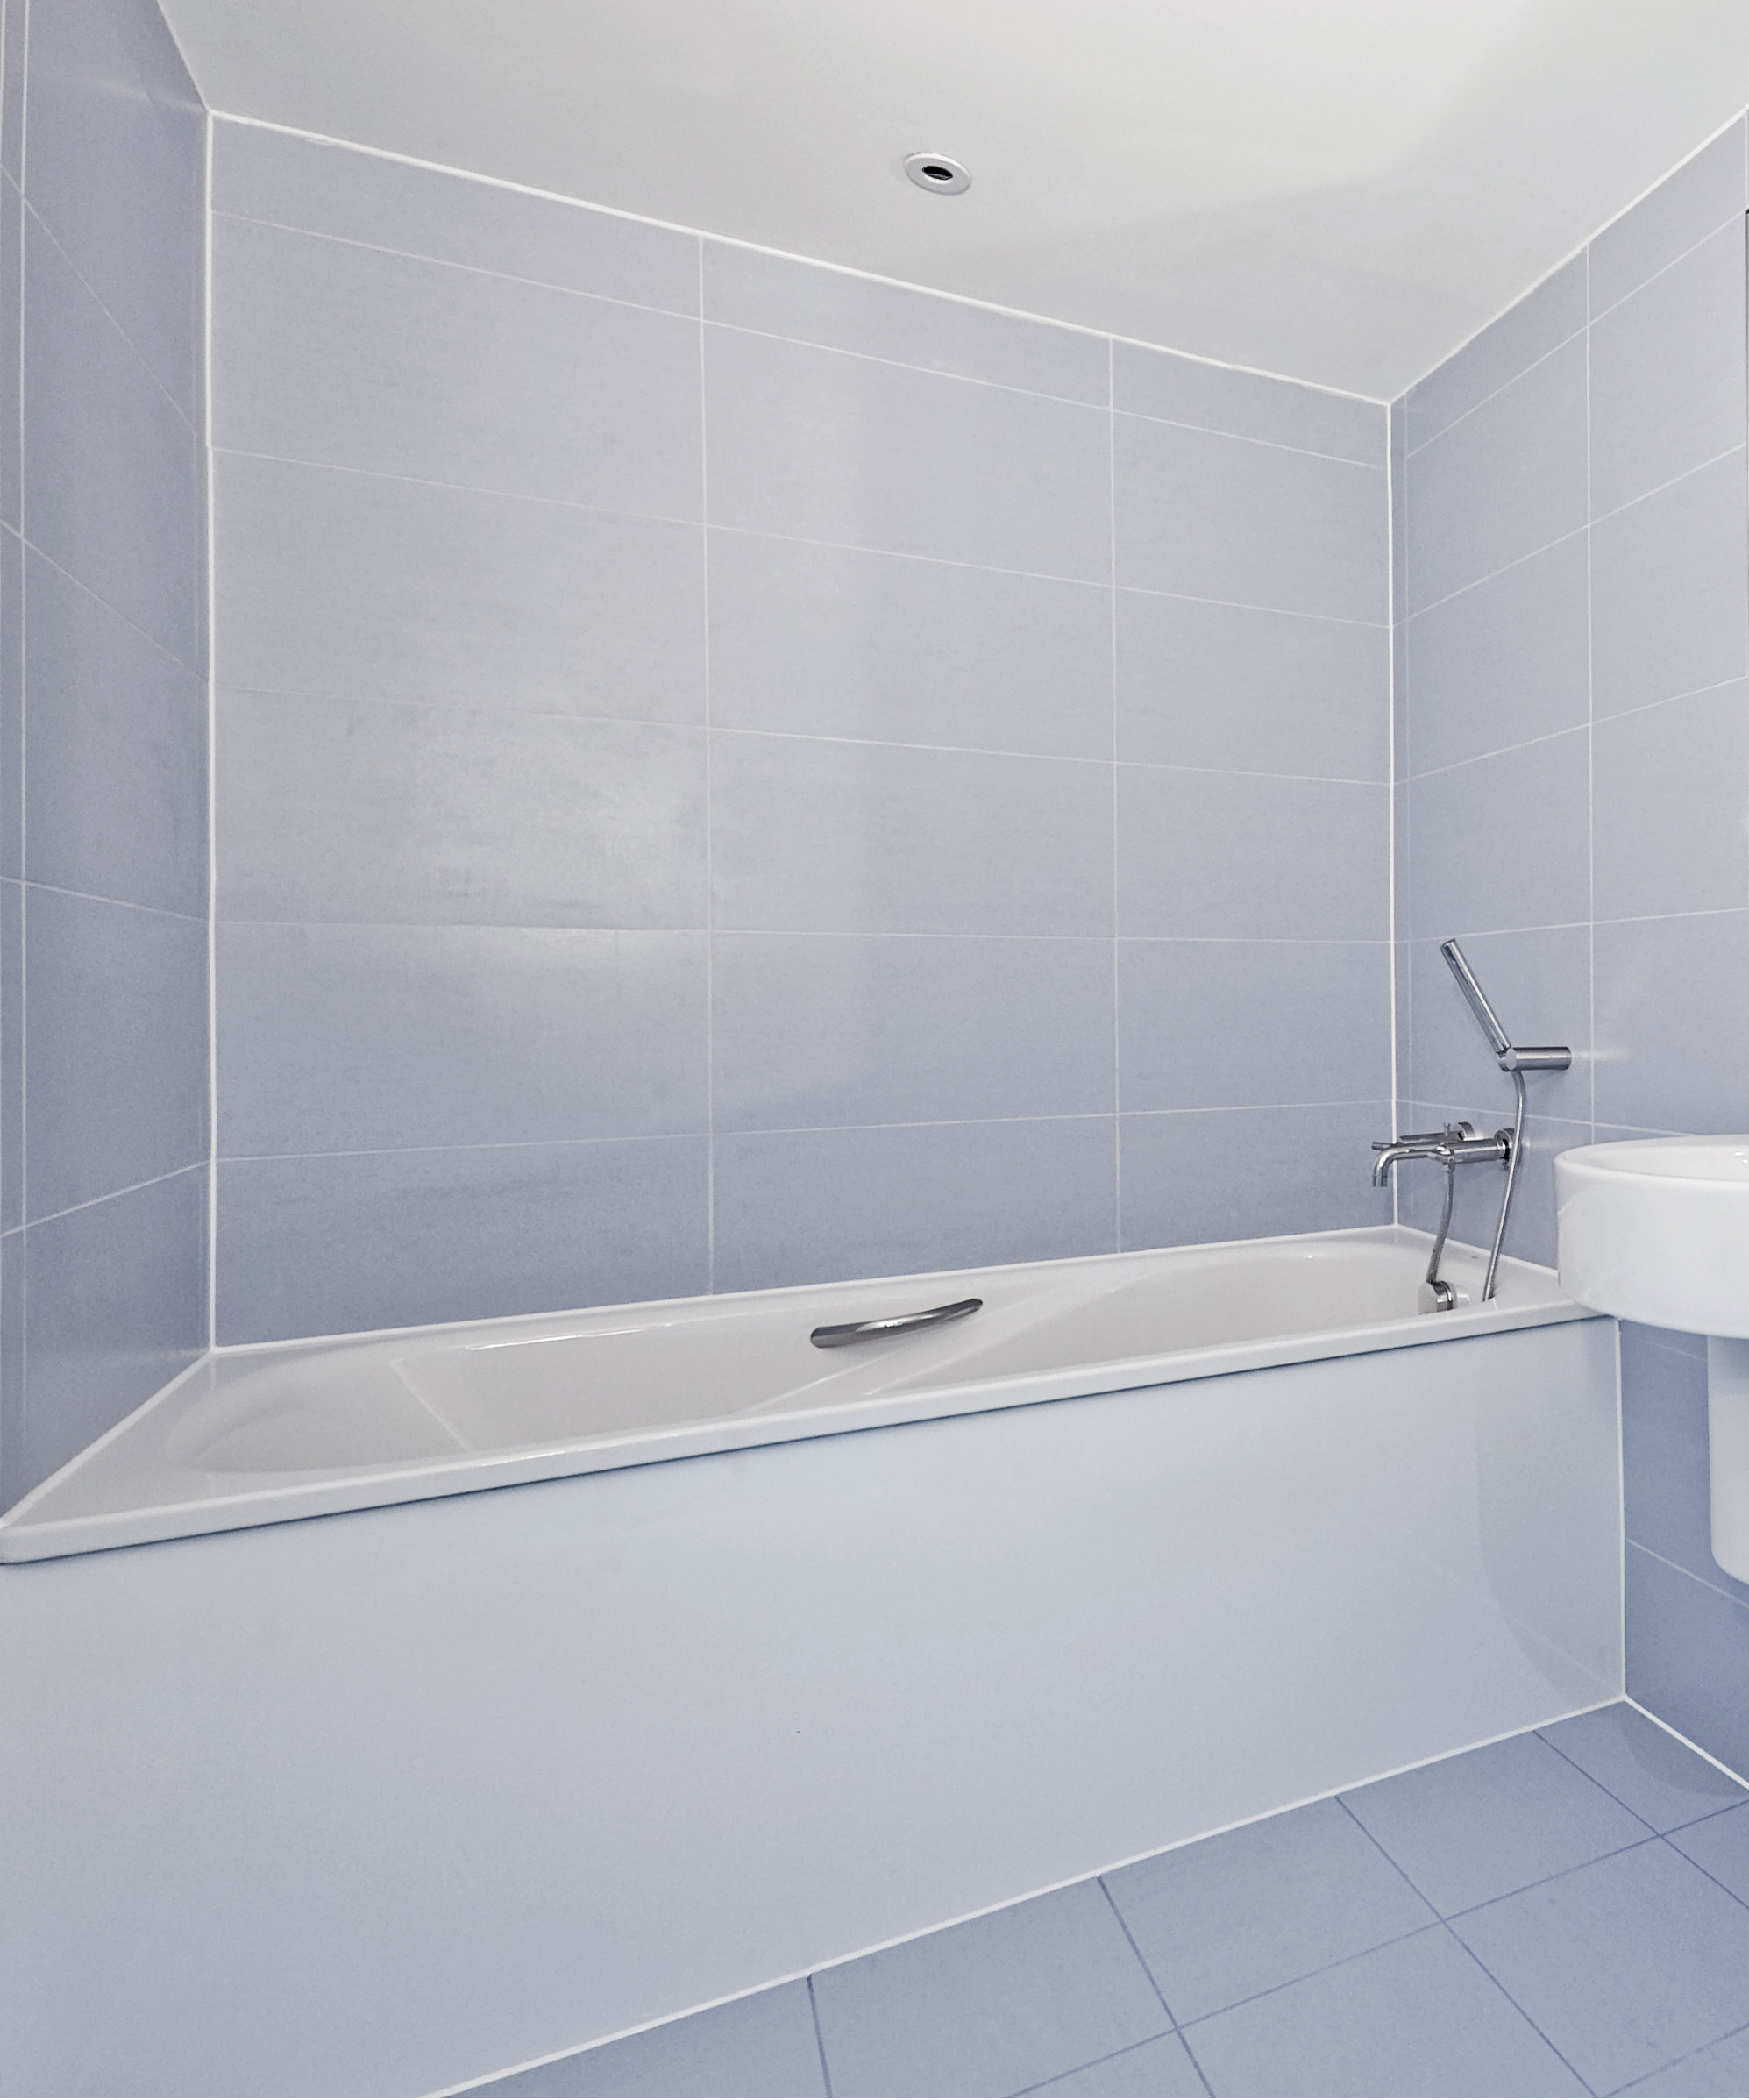 How Much Would It Cost To Replace A Bathtub Liner